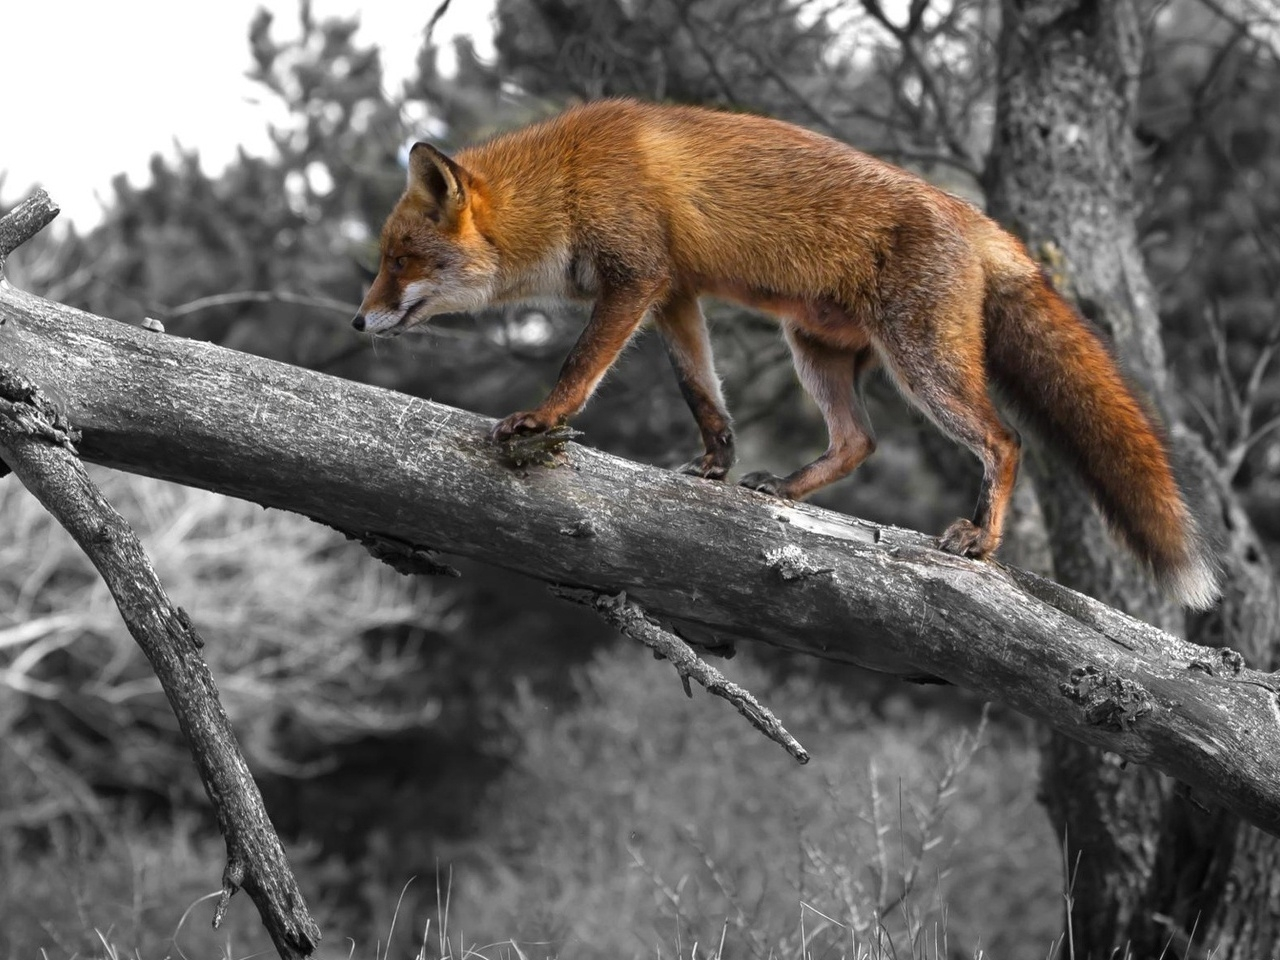 41037 download wallpaper Animals, Fox screensavers and pictures for free